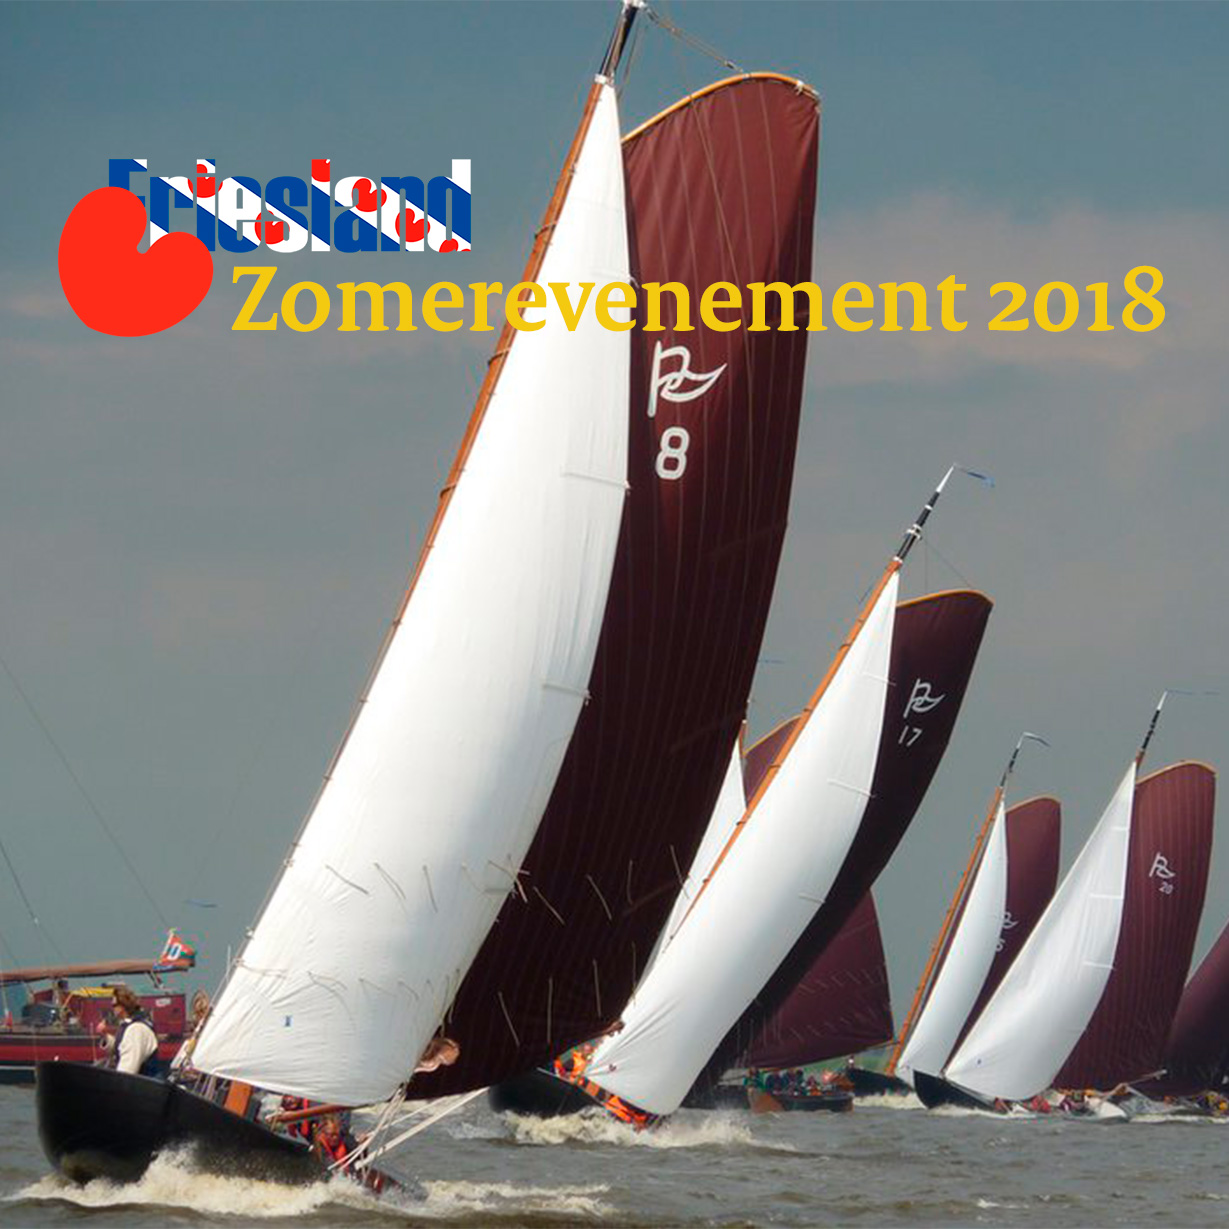 Zomerevenement 2018 Friesland